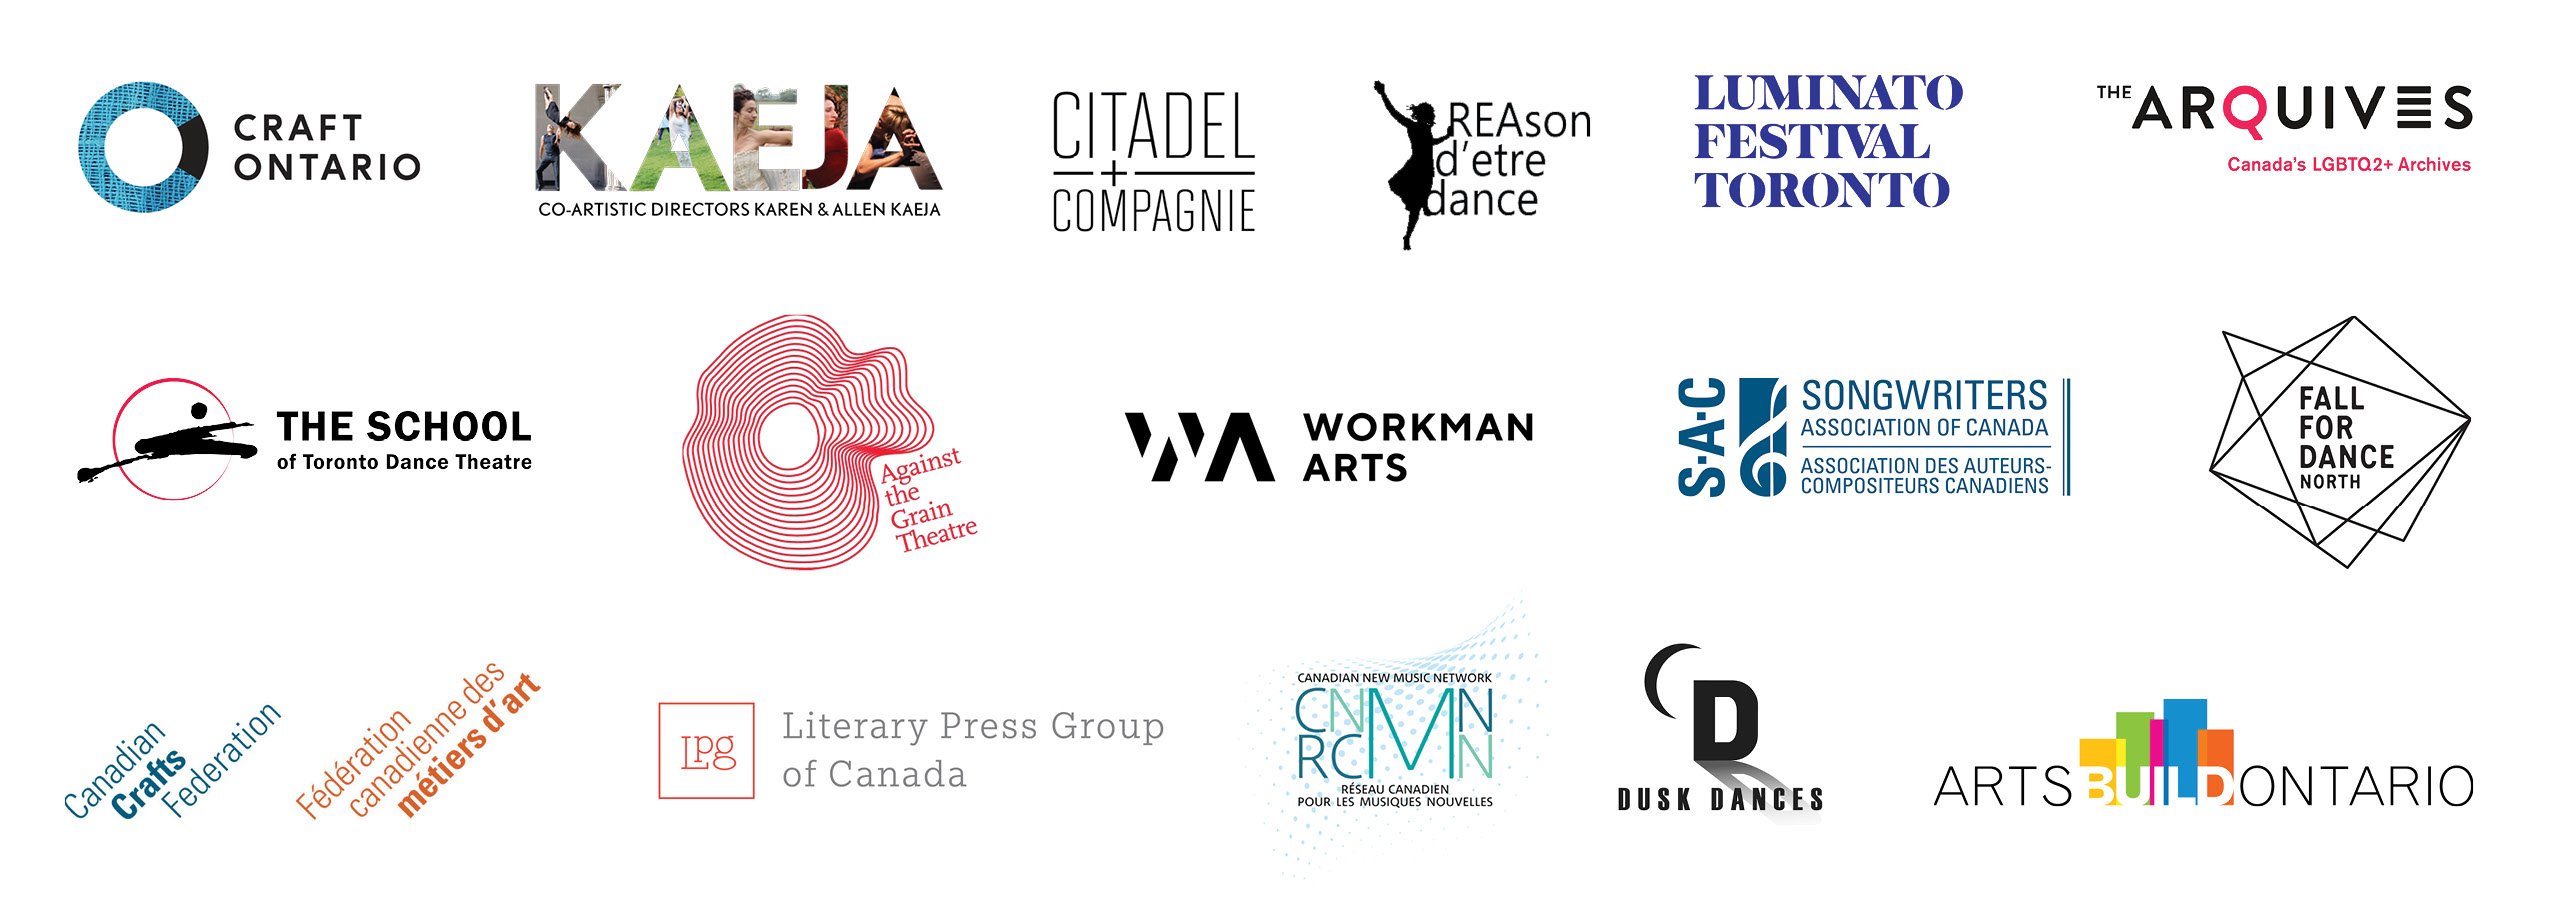 Logos of participating organizations: Against the Grain Theatre , Craft Ontario , CCF/FCMA , Artsbuild Ontario , The School of Toronto Dance Theatre , Songwriters Association of Canada , Dusk Dances , Literary Press Group of Canada , The ArQuives , Kaeja d'Dance , Fall for Dance North , Luminato , Citadel + Compagnie , Workman Arts , Canadian New Music Network , REAson d'etre dance .